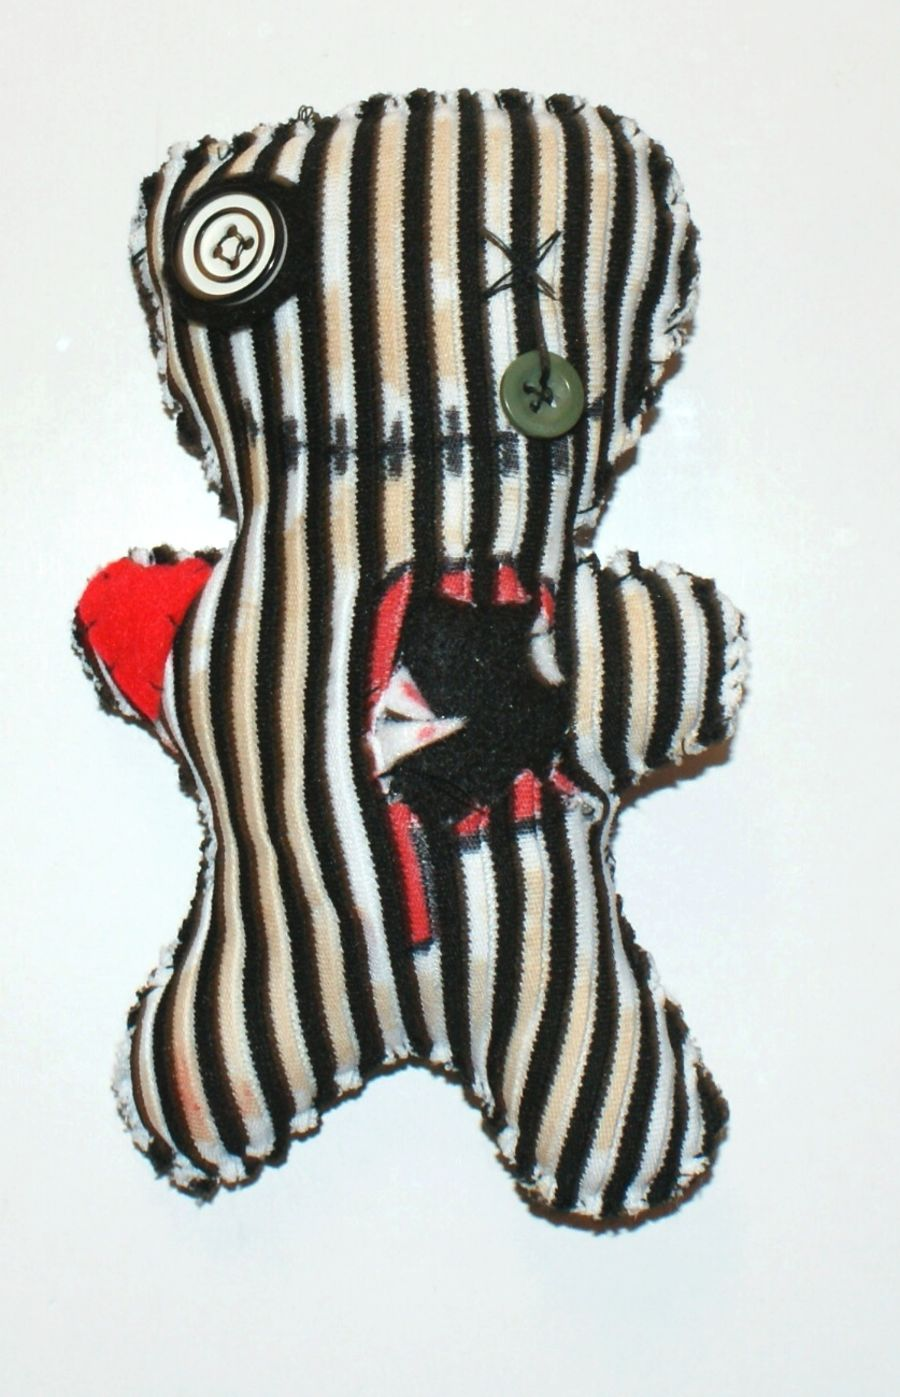 Stripy Voodoo Doll